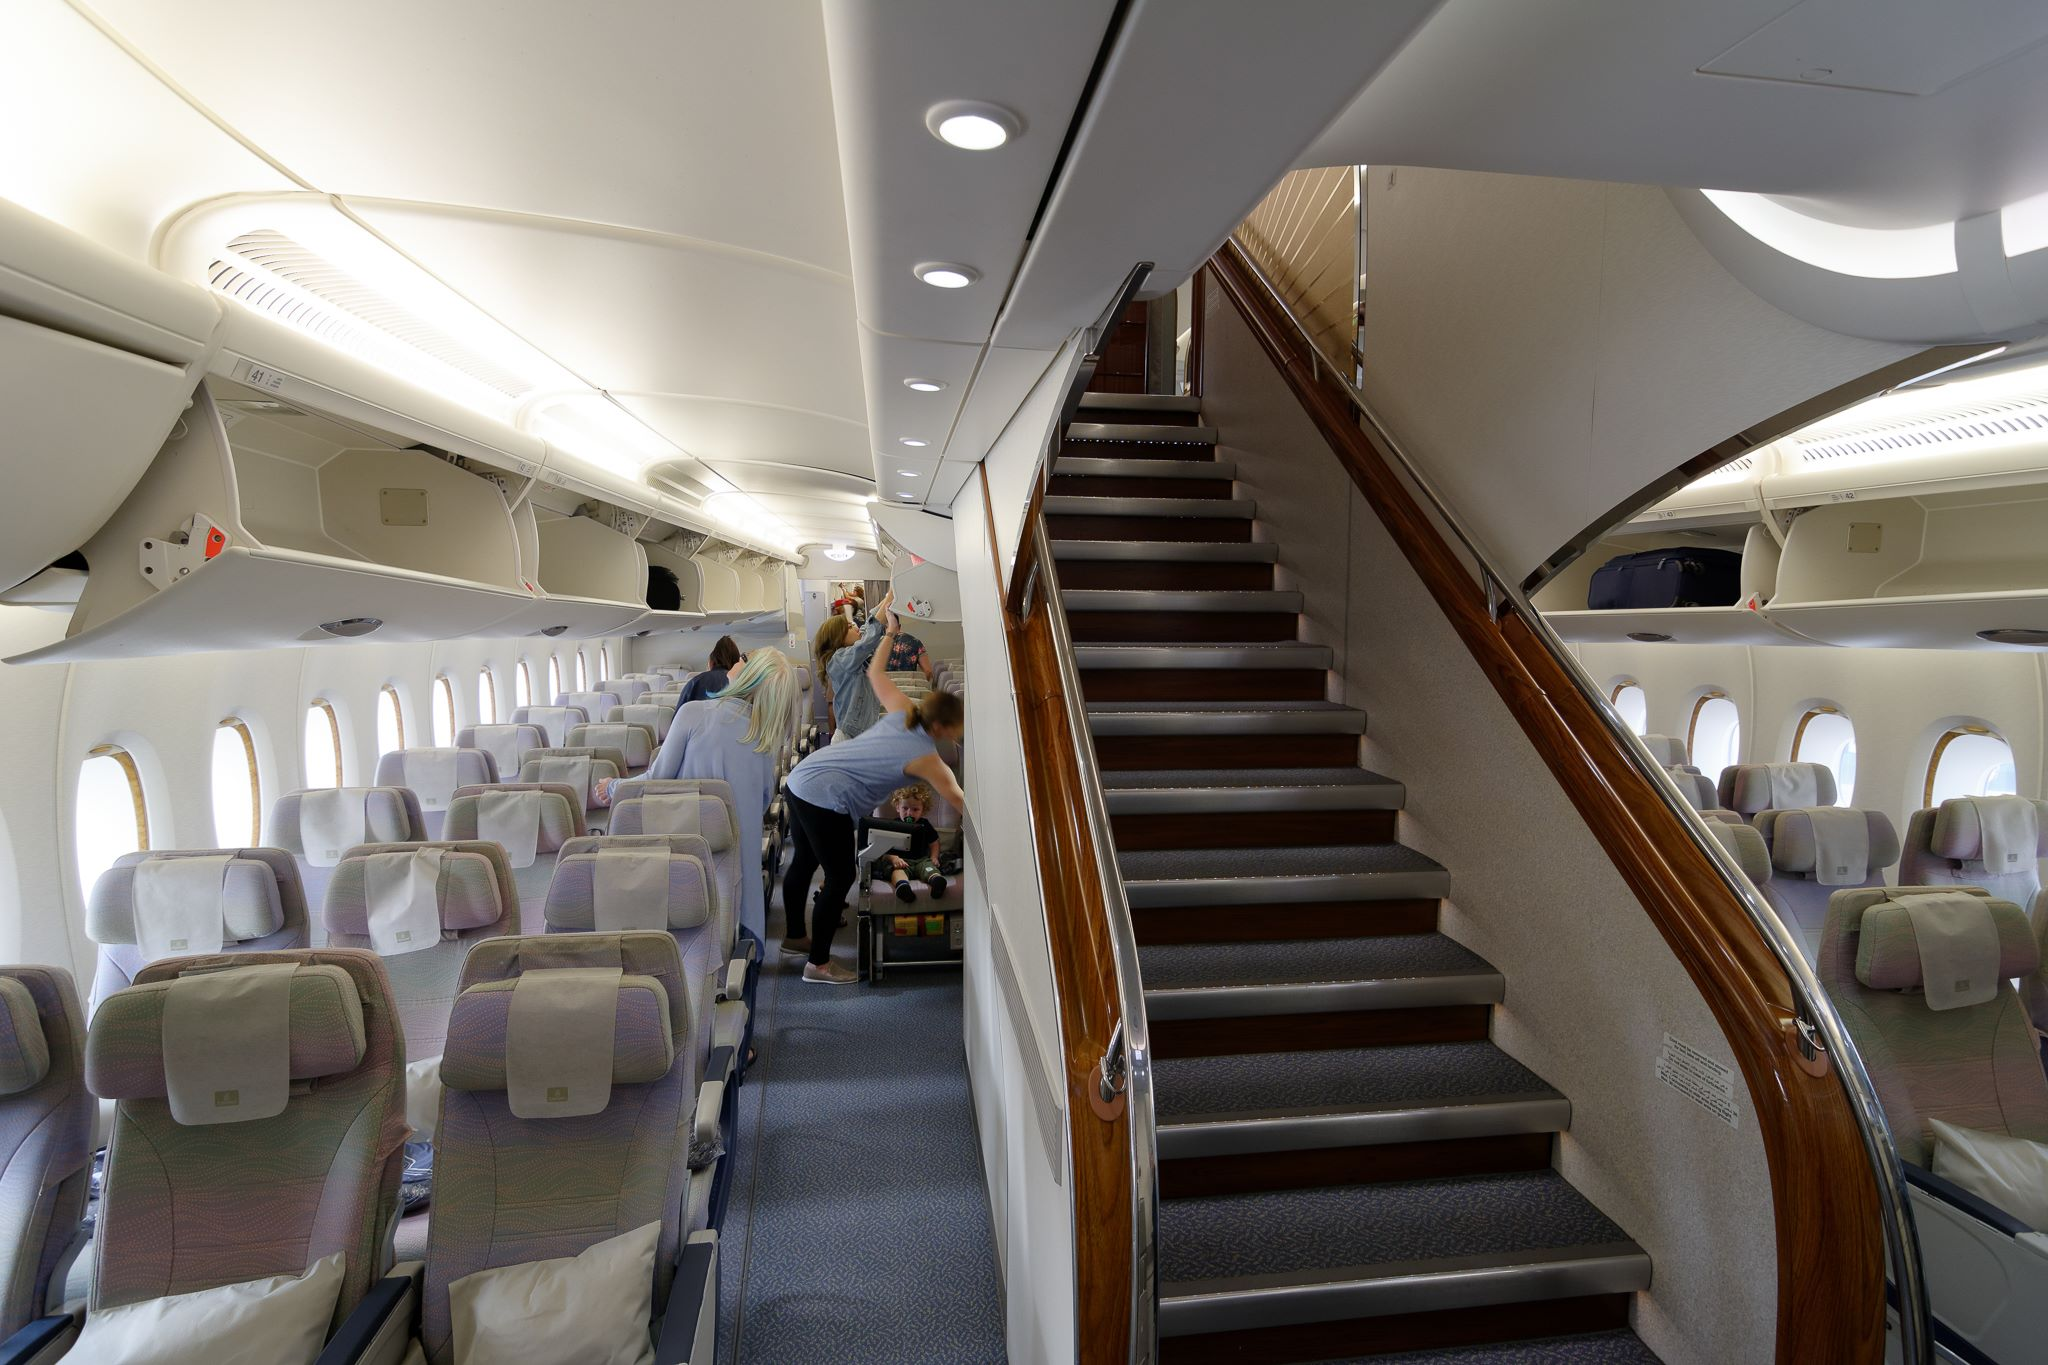 Amazing Emirates First Class And Business Class Full Review With Cost